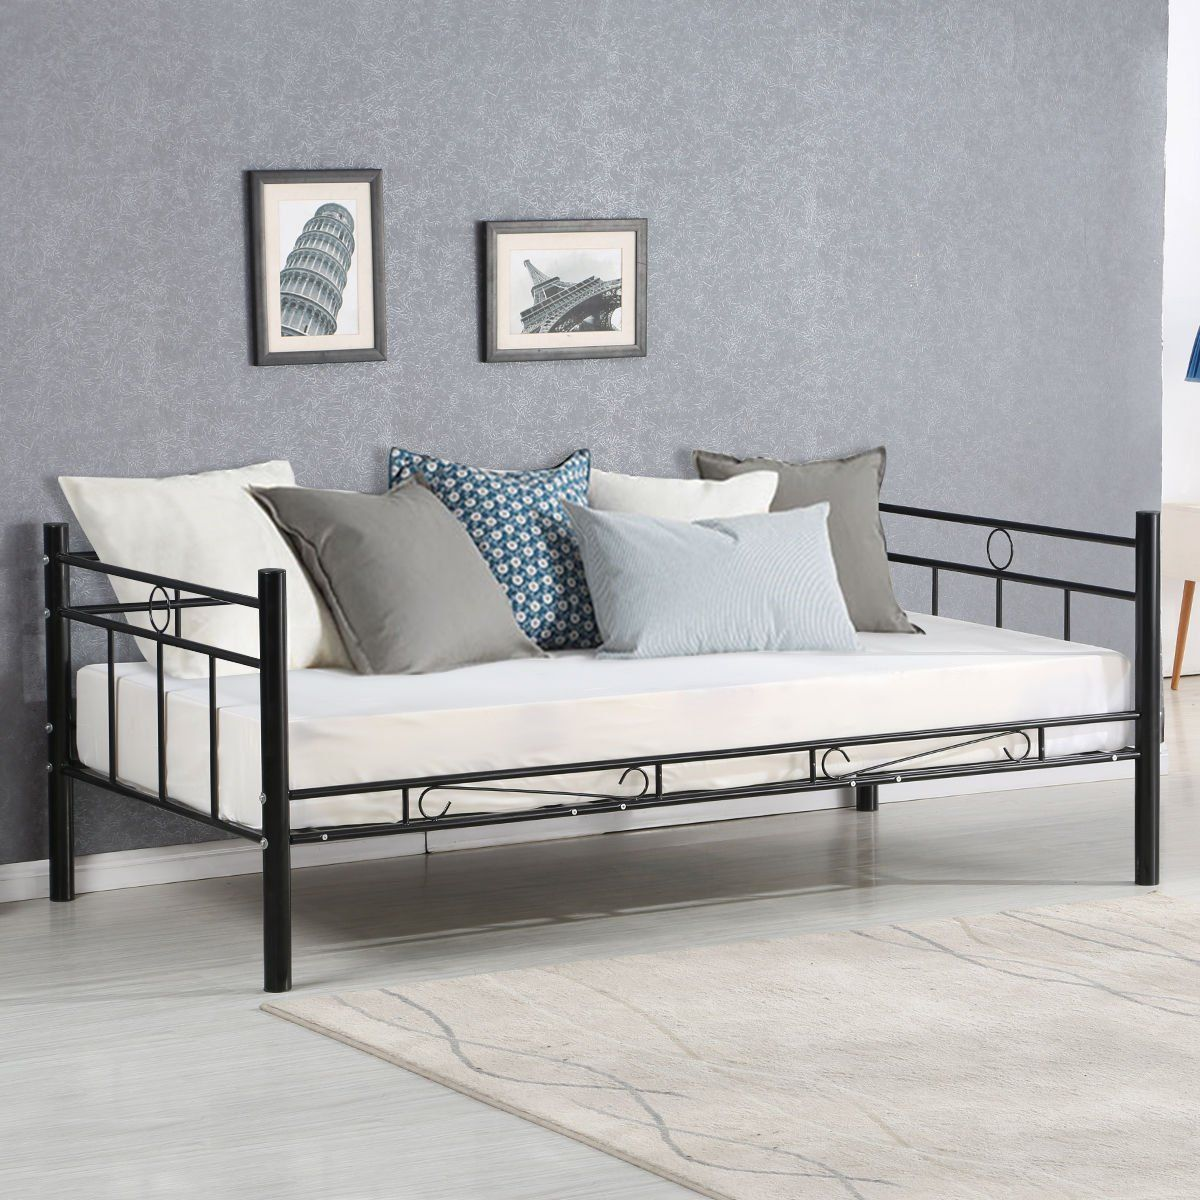 Giantex Twin Size Daybed Frame Metal Sofa Bed Solid